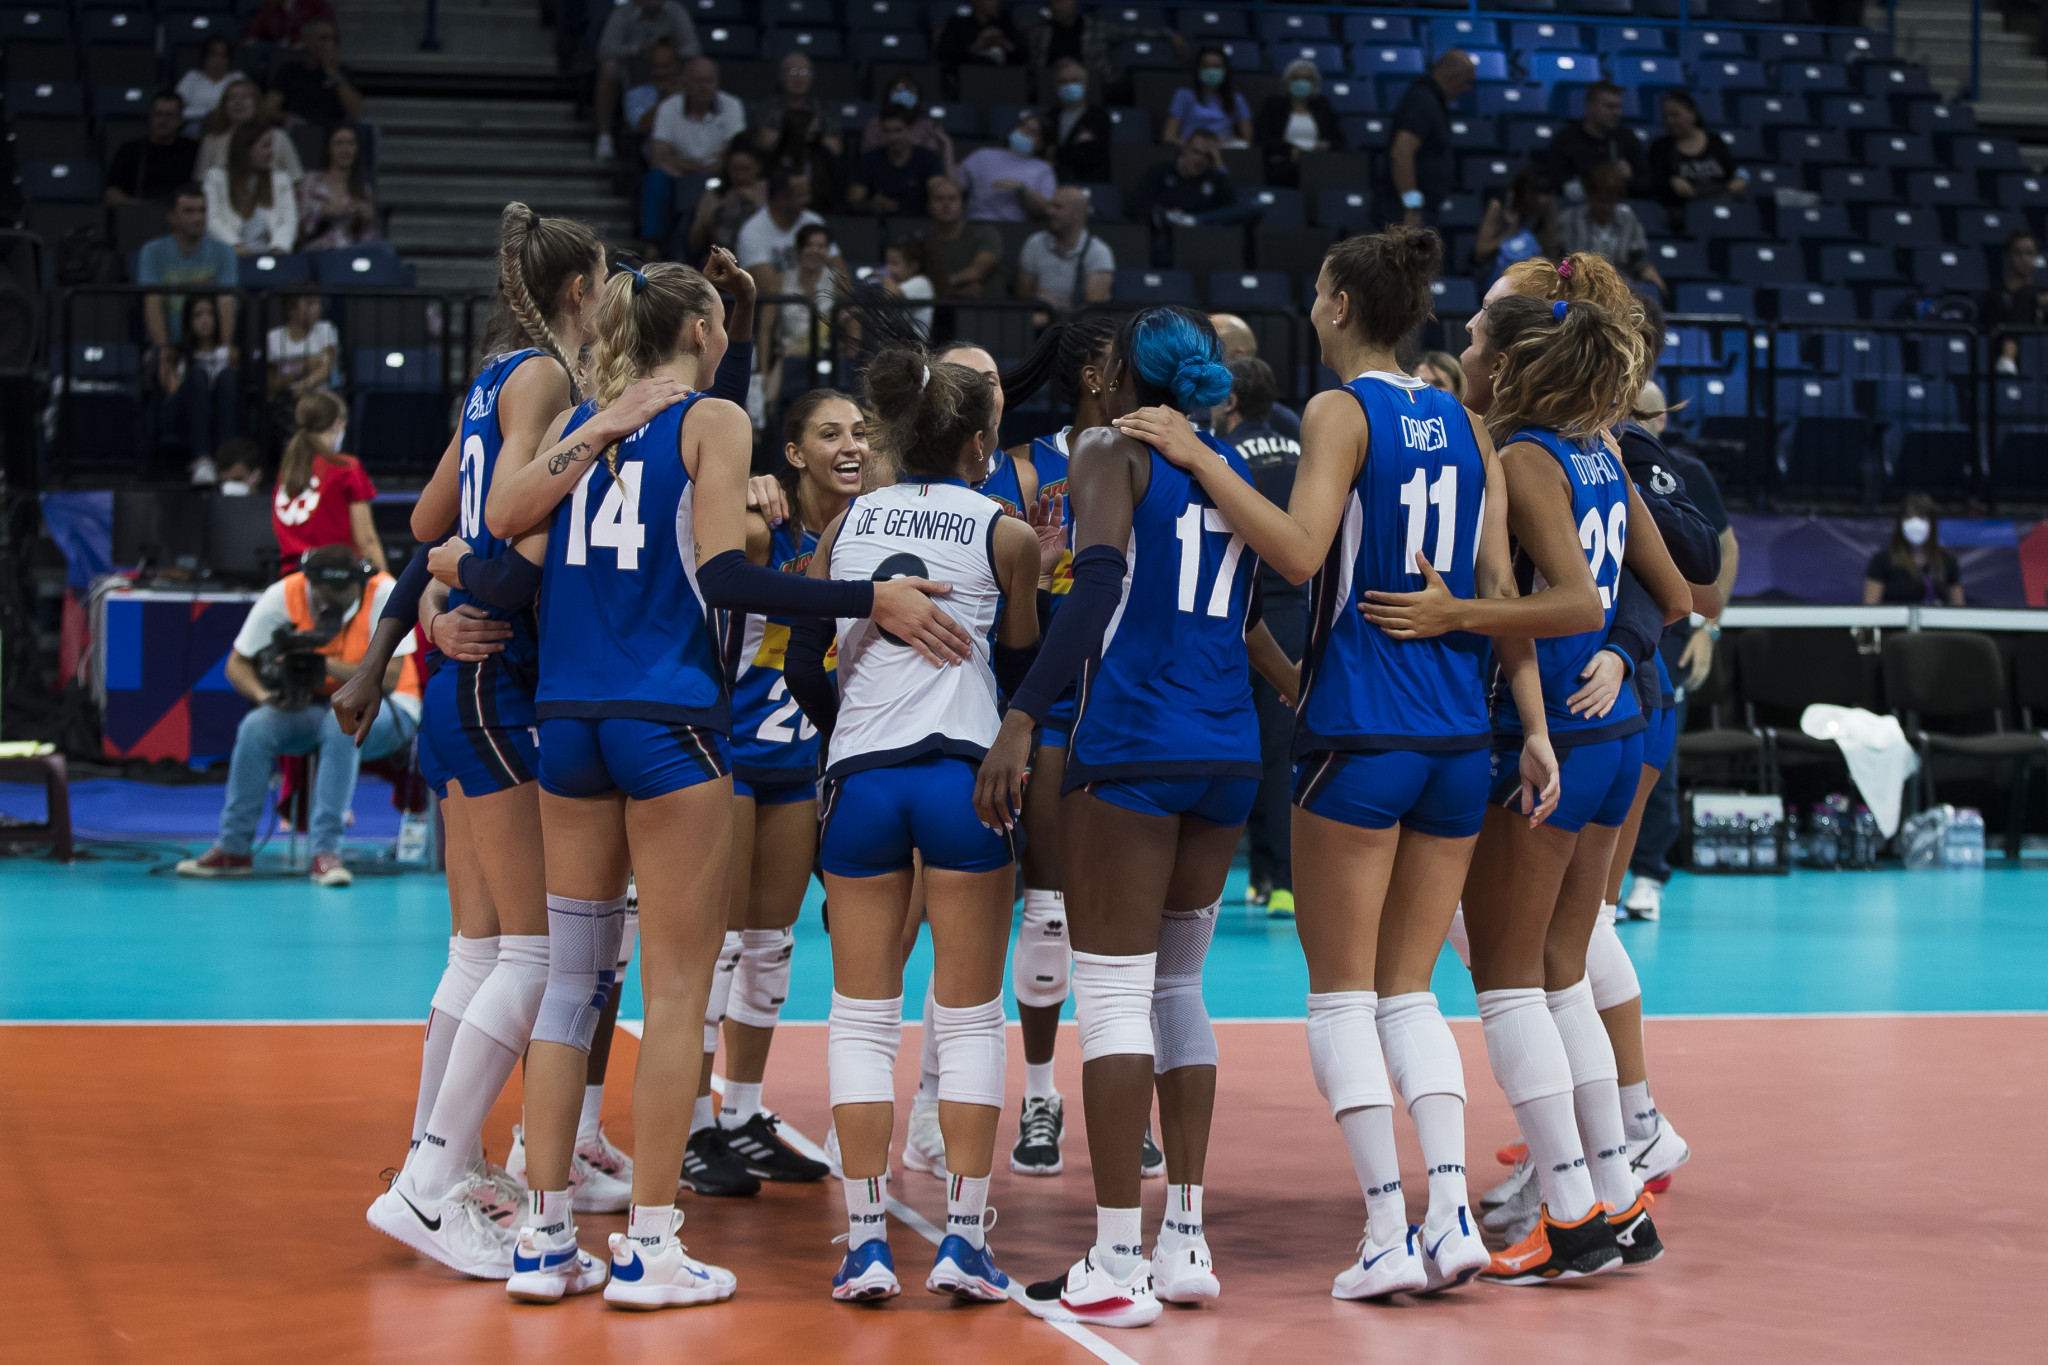 Serbia and Russia dominate to advance to 2021 Women's EuroVolley semi-finals